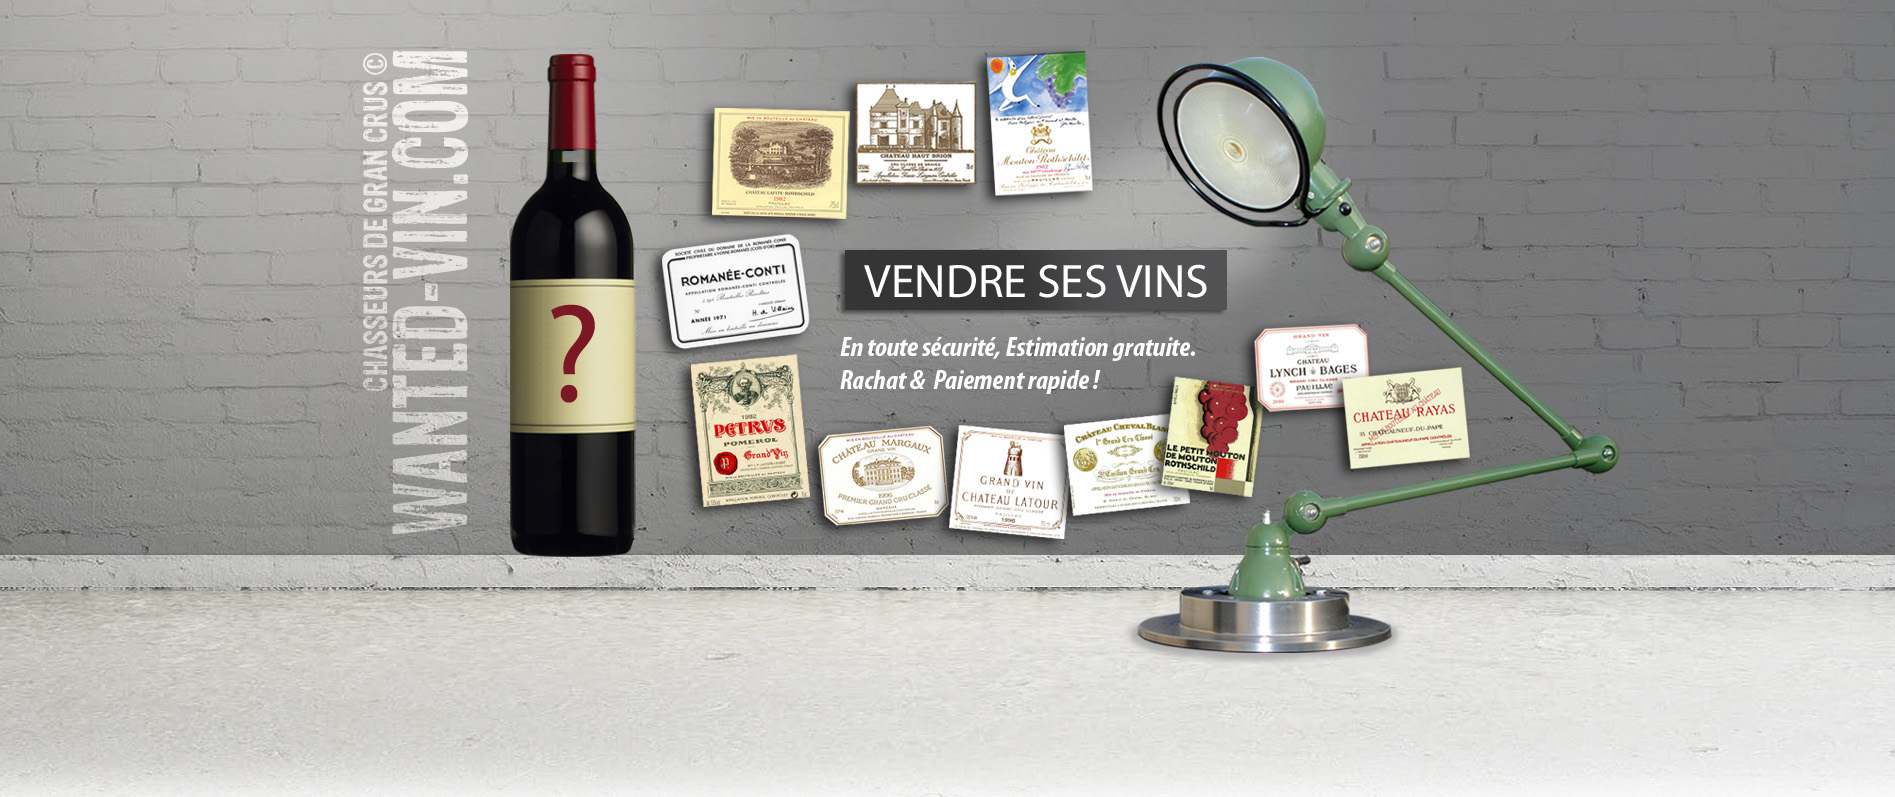 vendre des vins rachat bouteilles estimation vin wanted vin grands crus. Black Bedroom Furniture Sets. Home Design Ideas